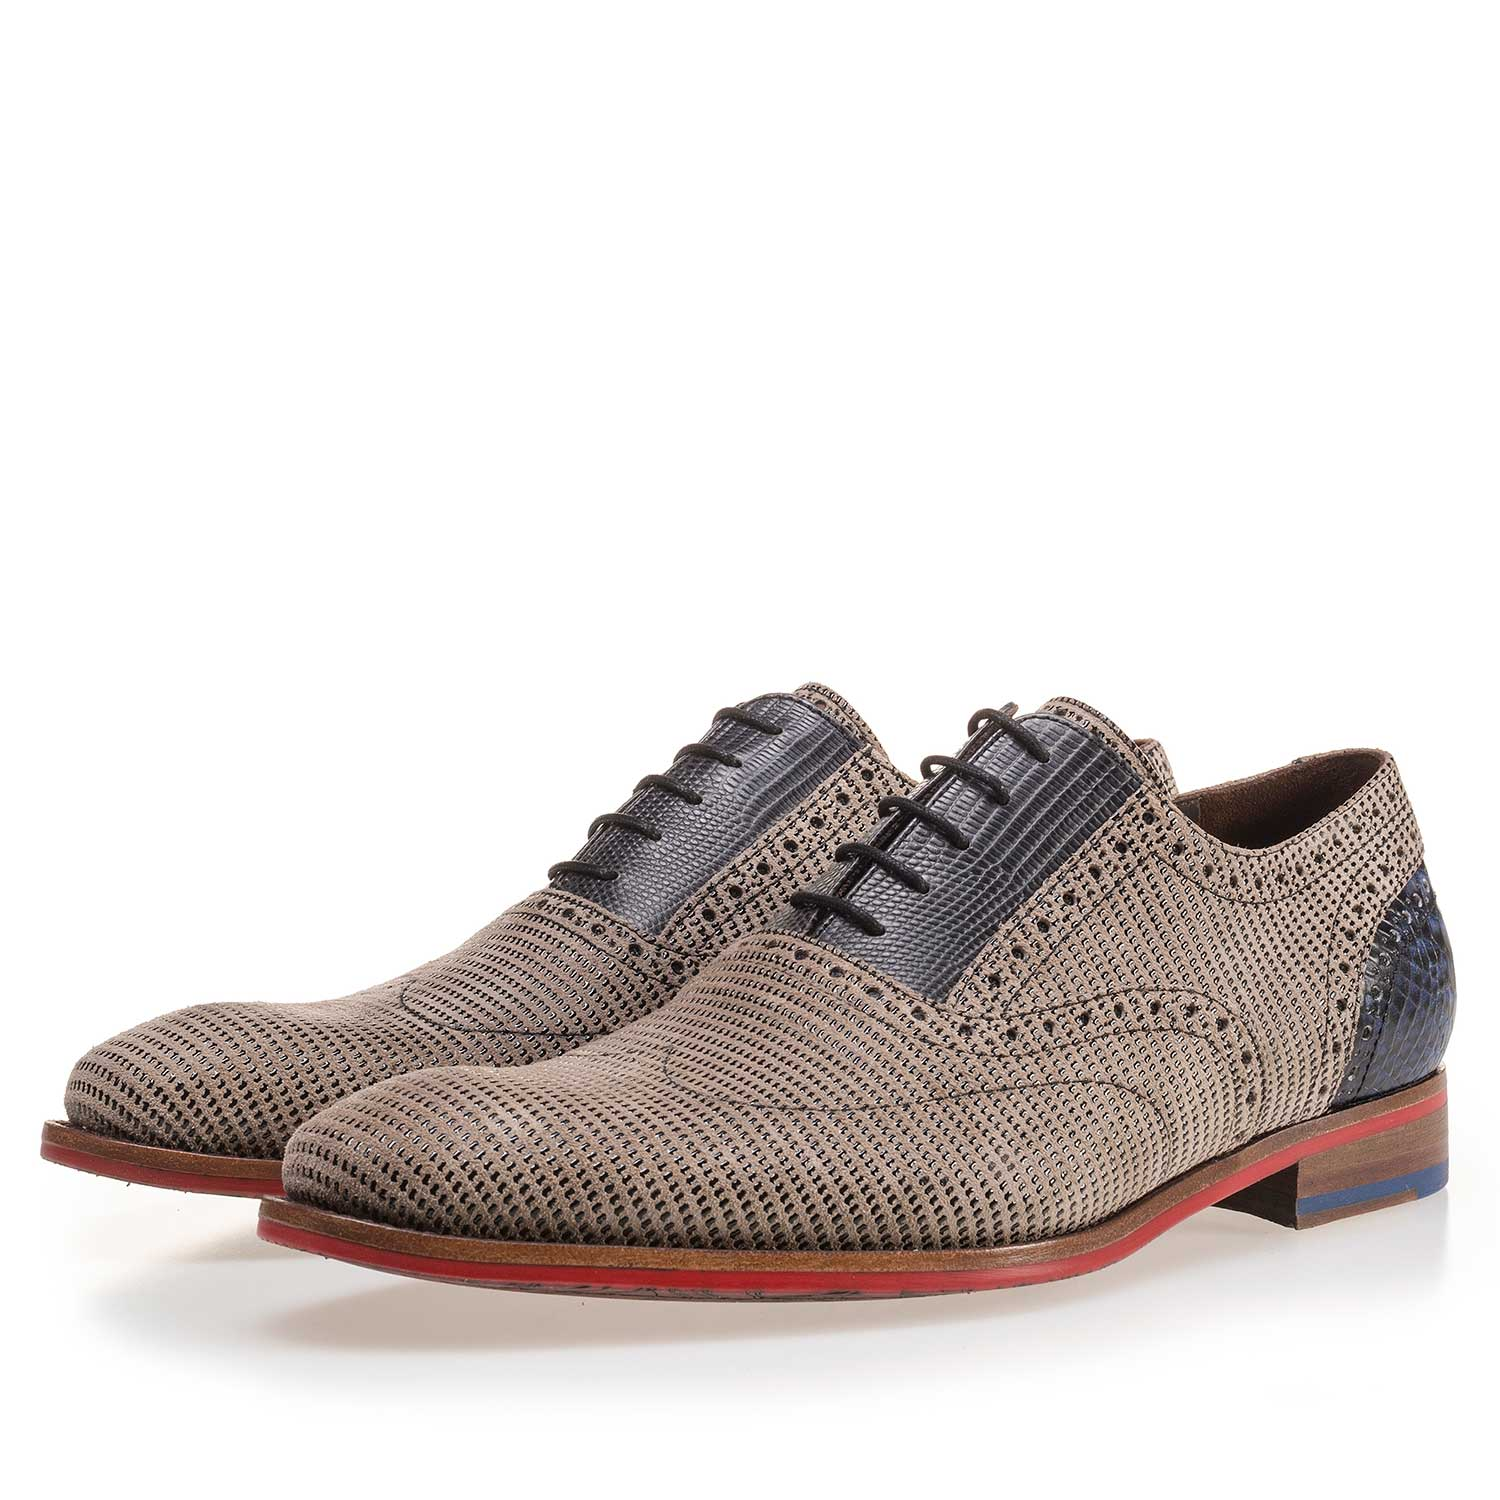 19114/06 - Sand-coloured patterned lace shoe made of suede leather